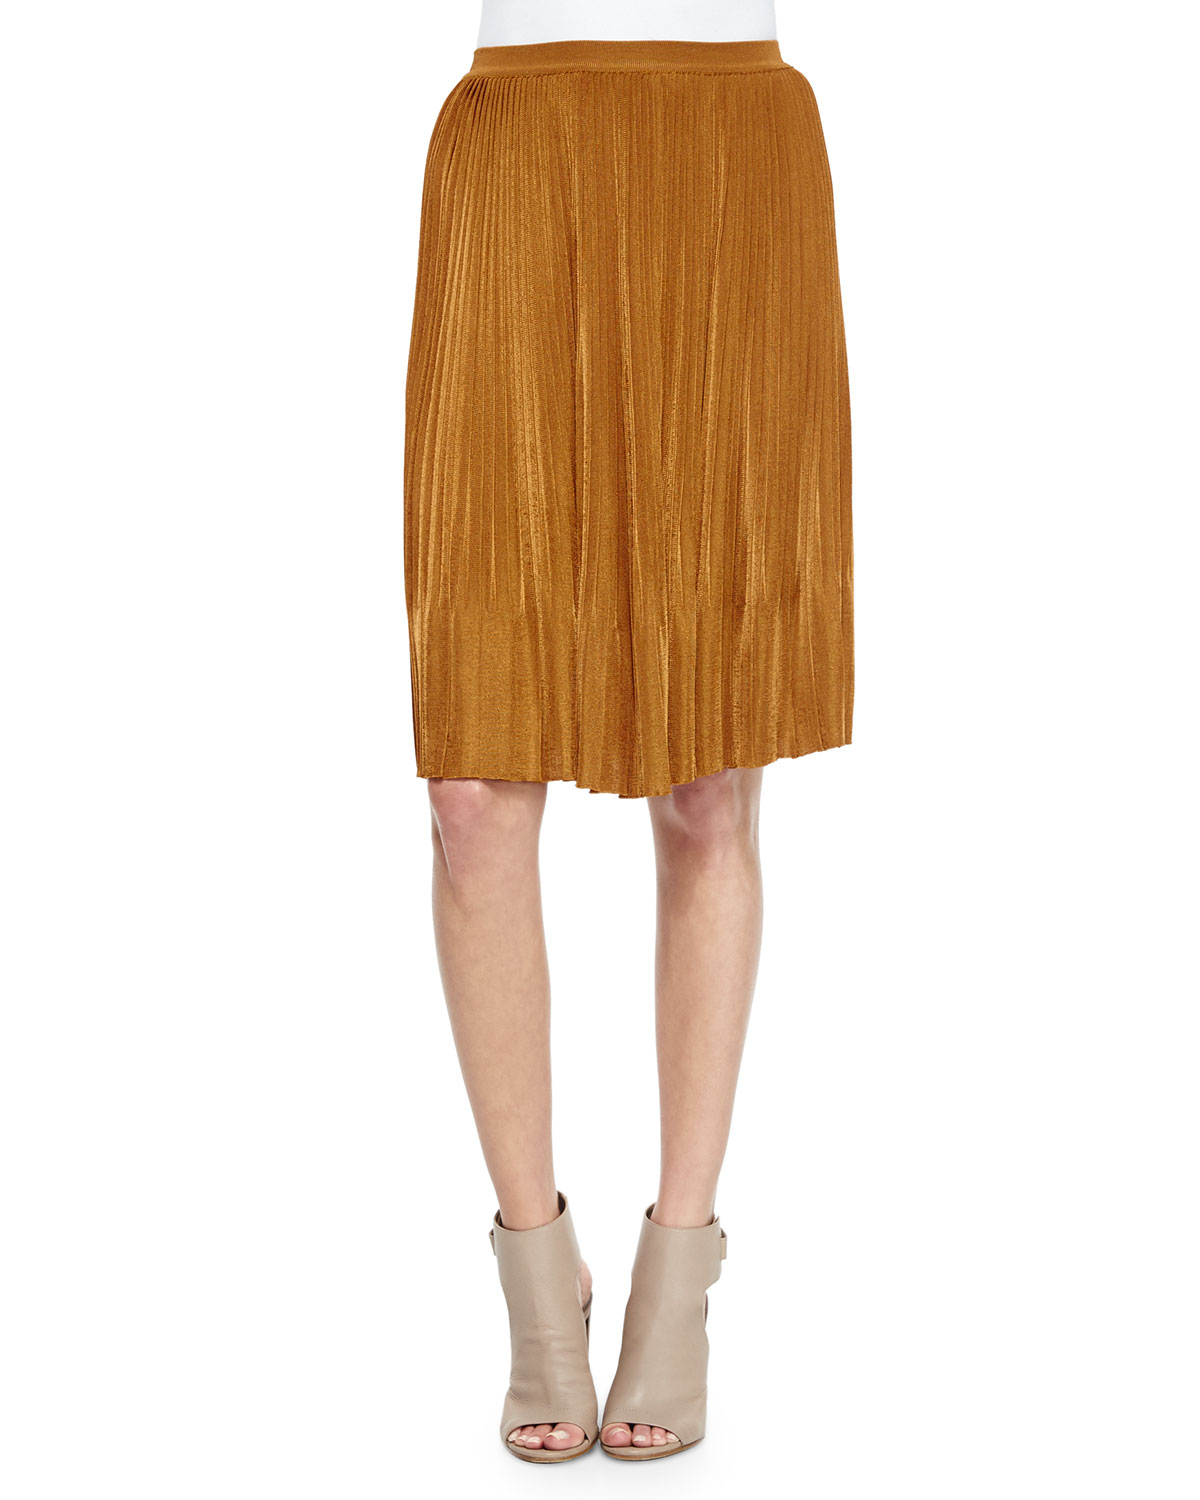 Brown straight skirt outfit